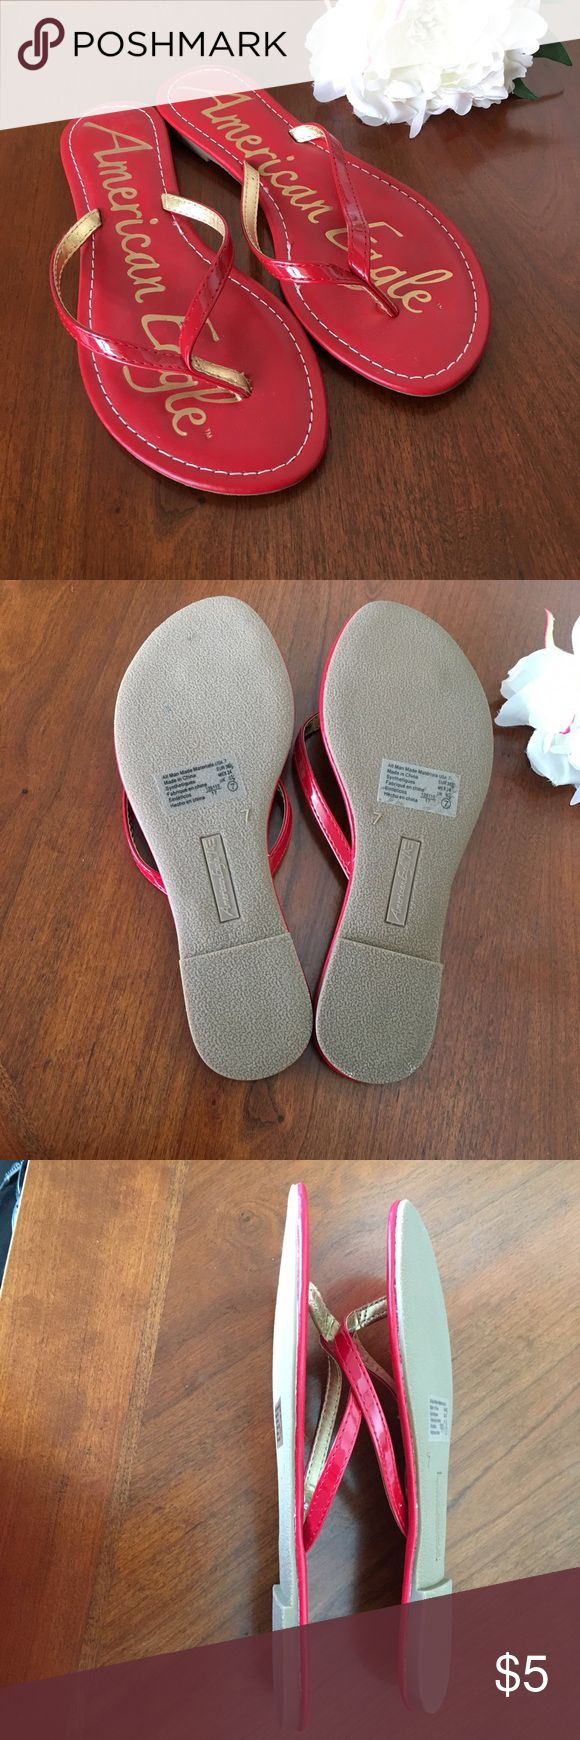 American Eagle red flip flop sandals size 7 Barely worn American eagle by Payless red sandals flip flops. Have a teeny tiny heel. Smoke free dog friendly home. American Eagle by Payless Shoes Sandals